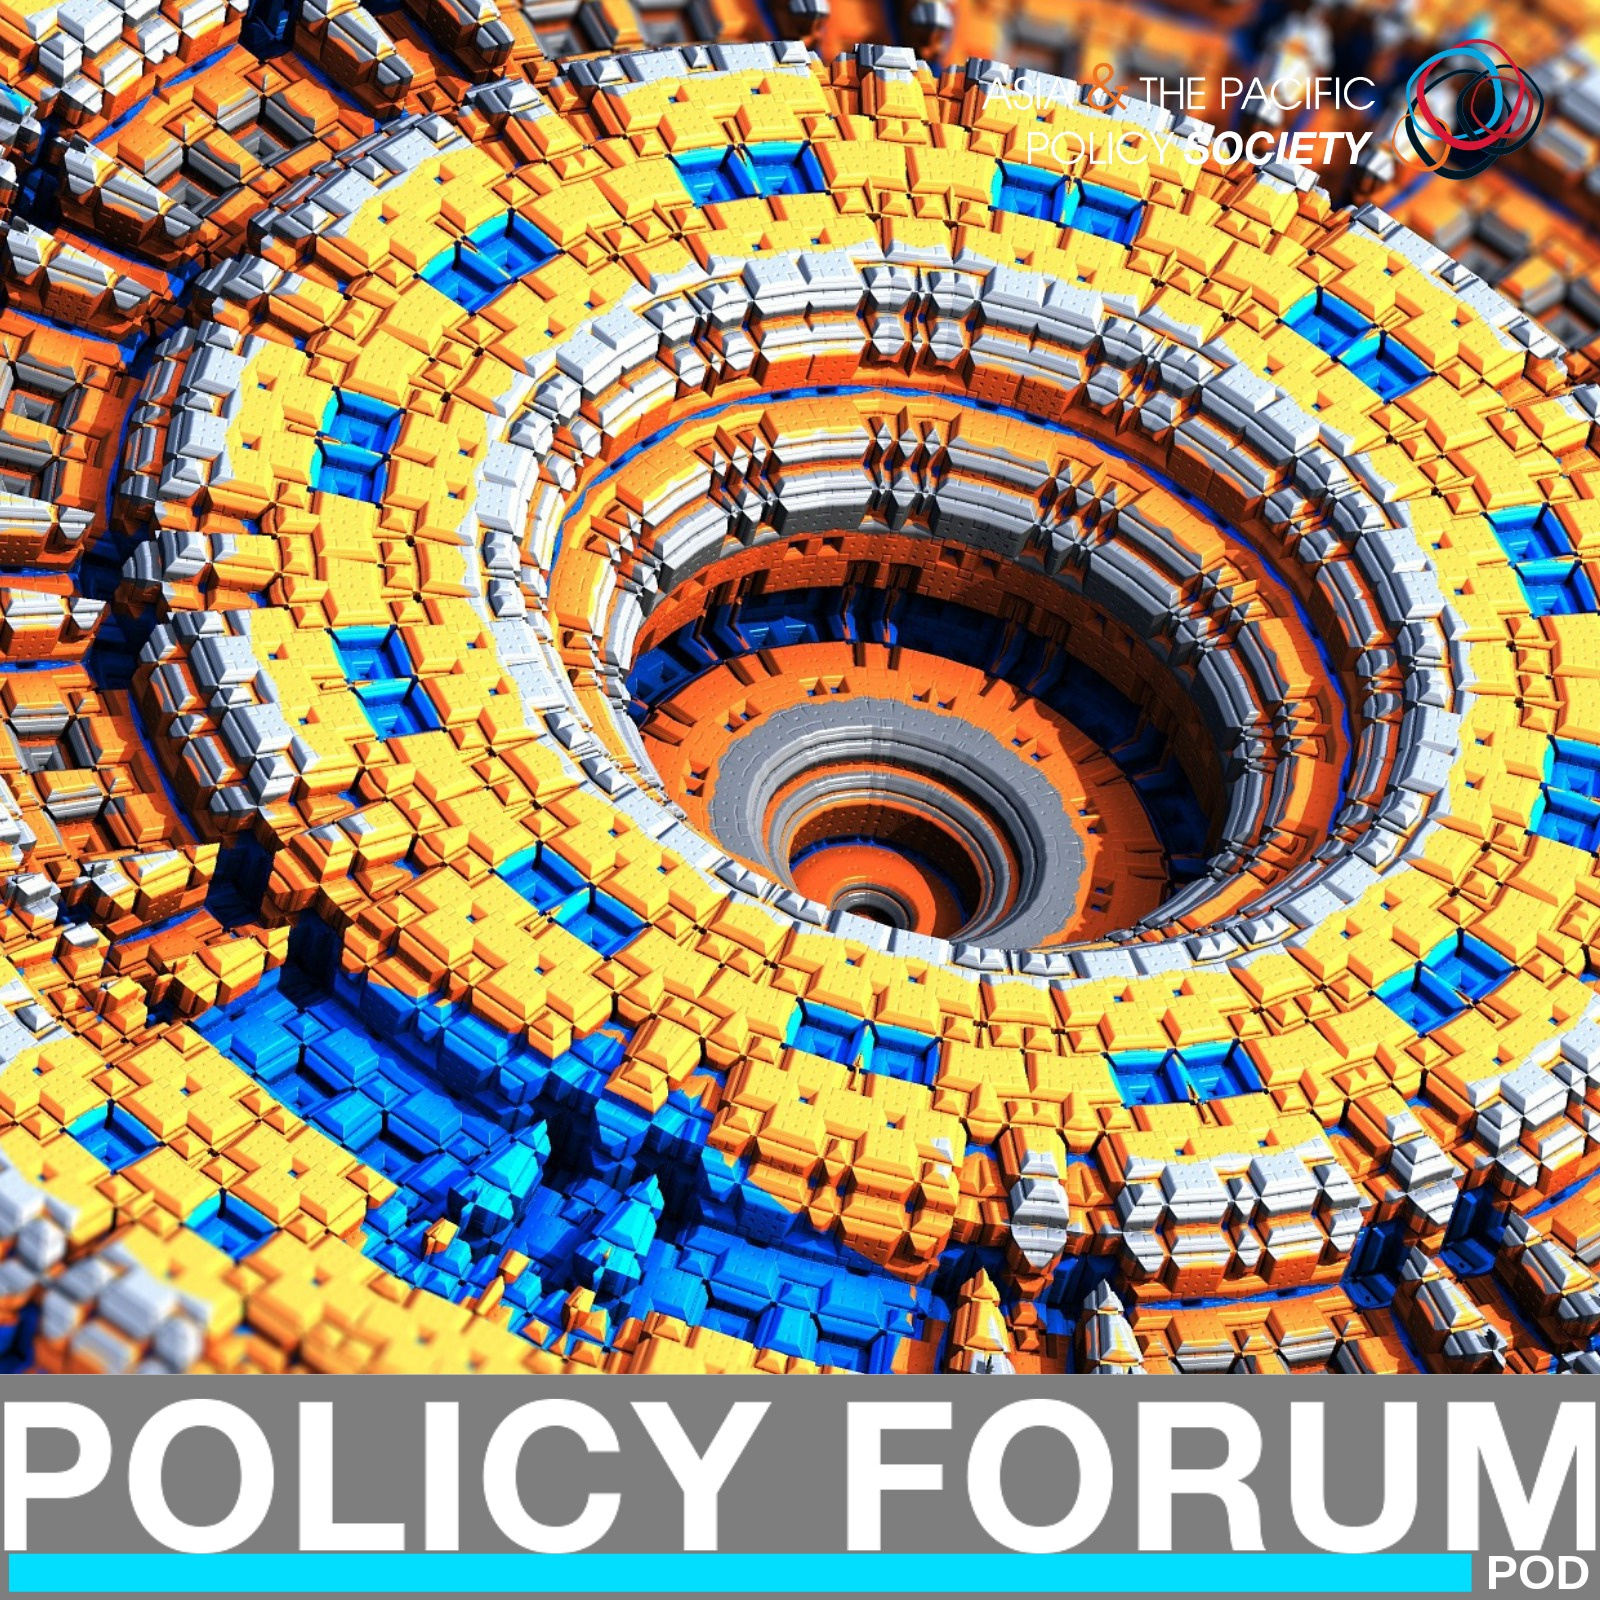 Getting science into policy, politics, and public discussion